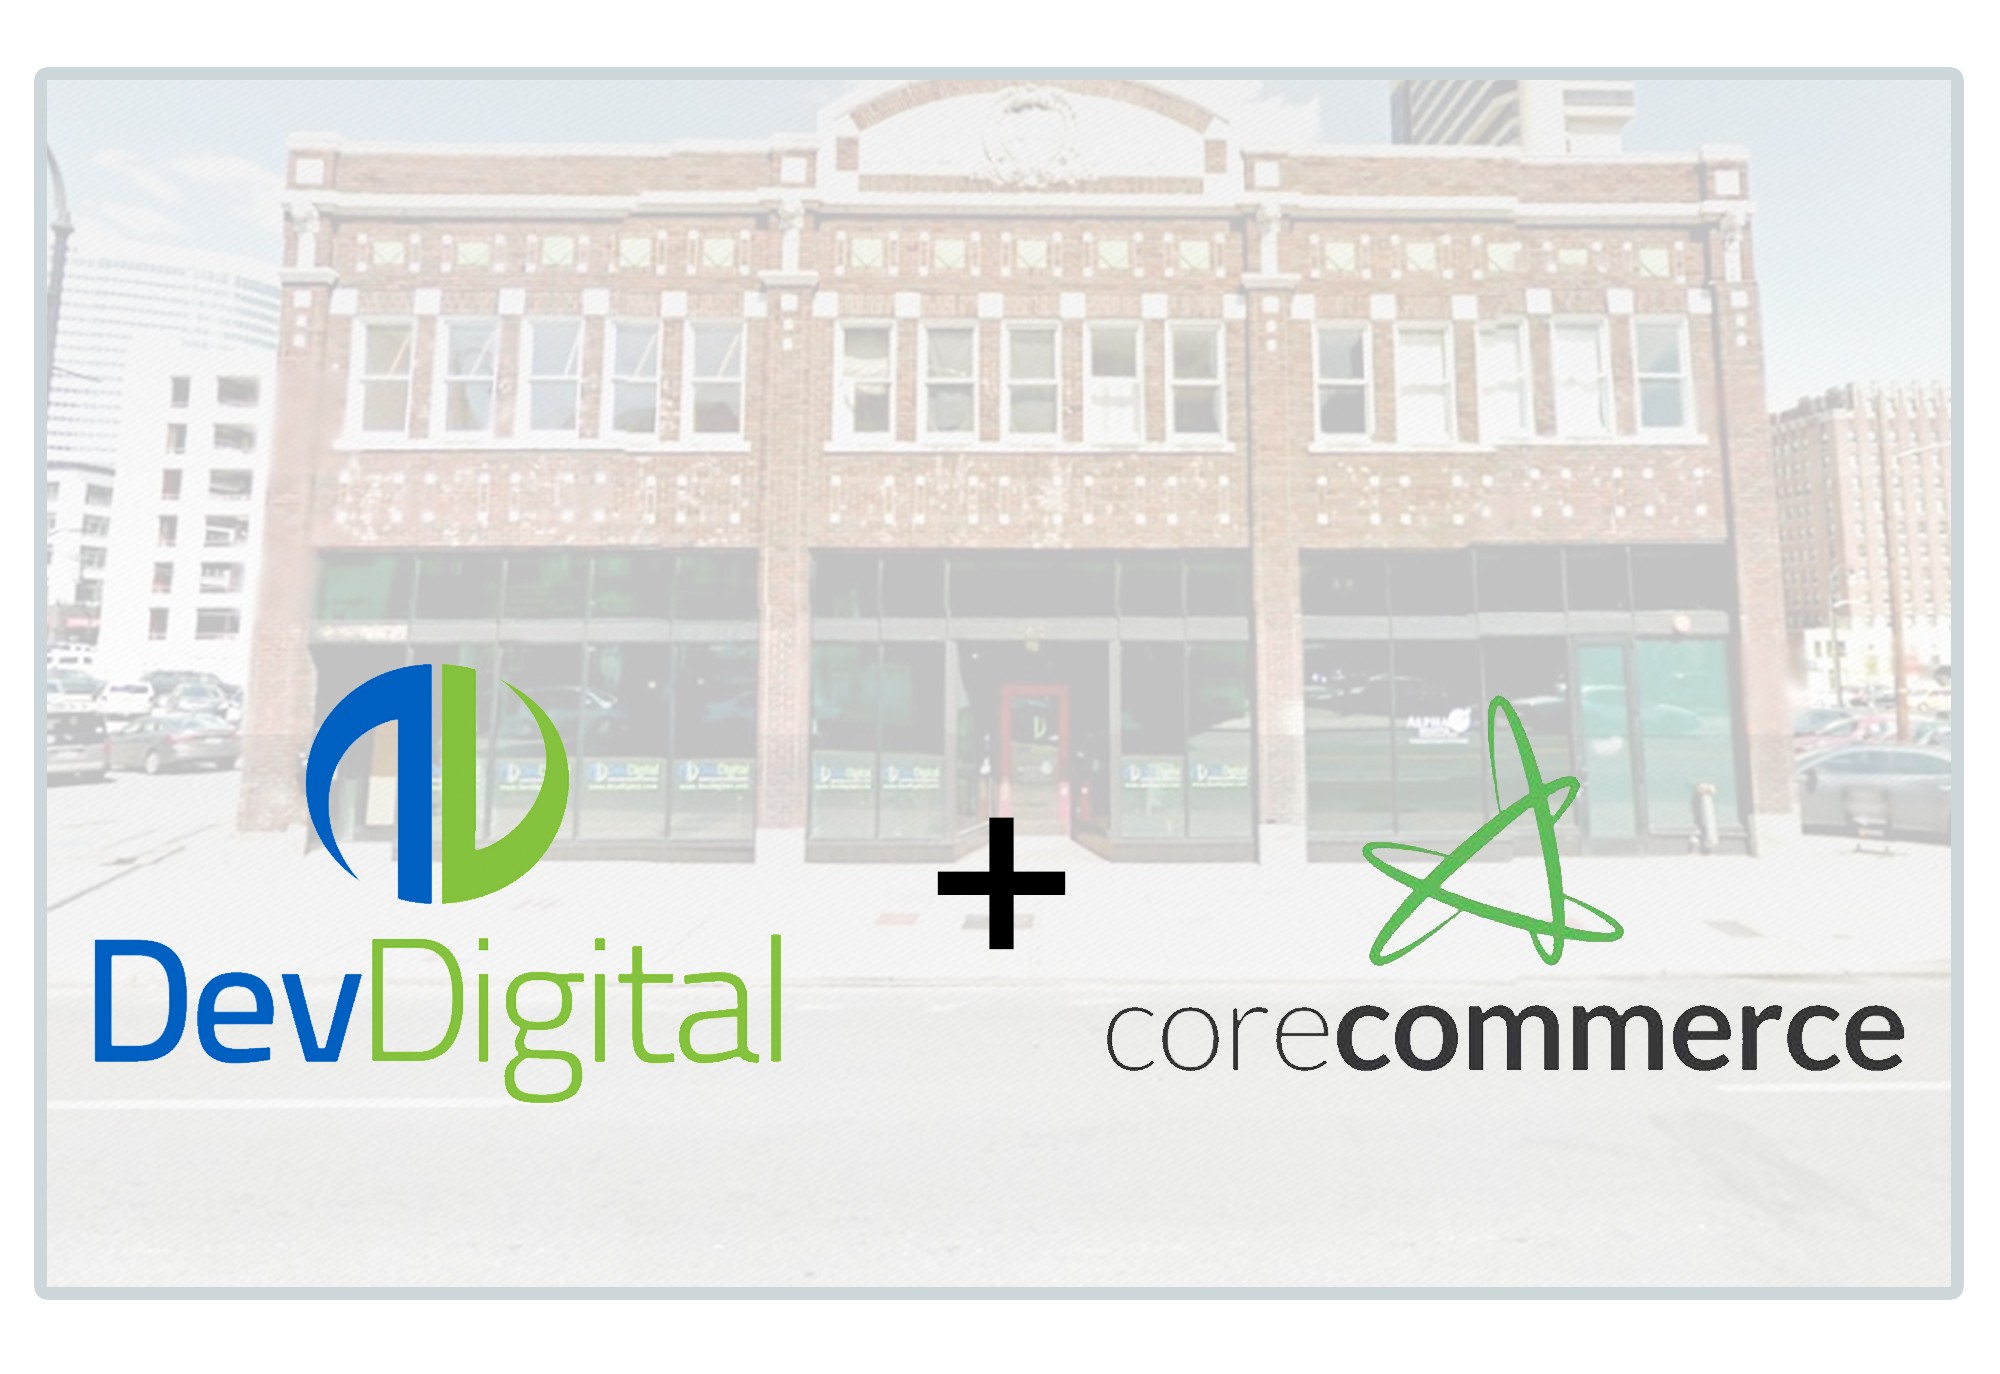 DevDigital and Partners Acquire CoreCommerce